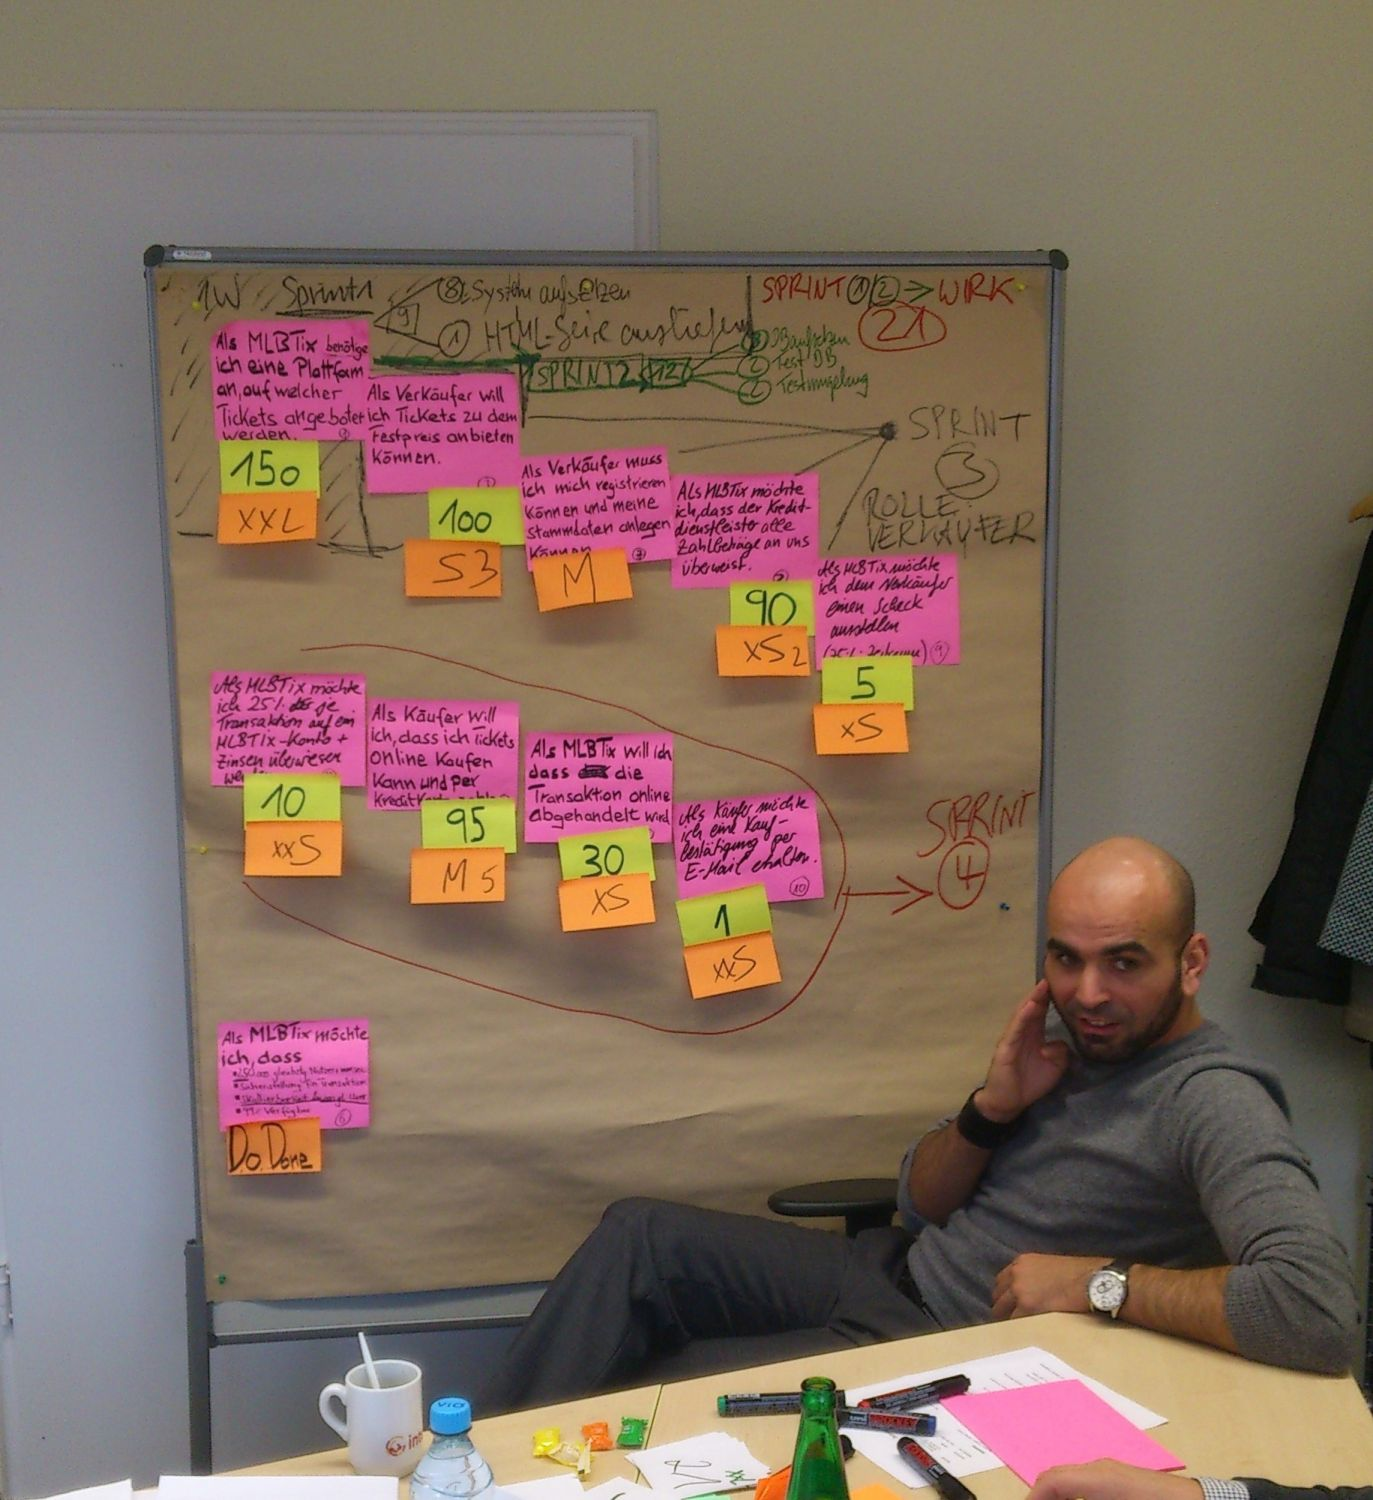 Das Scrum Product Backlog